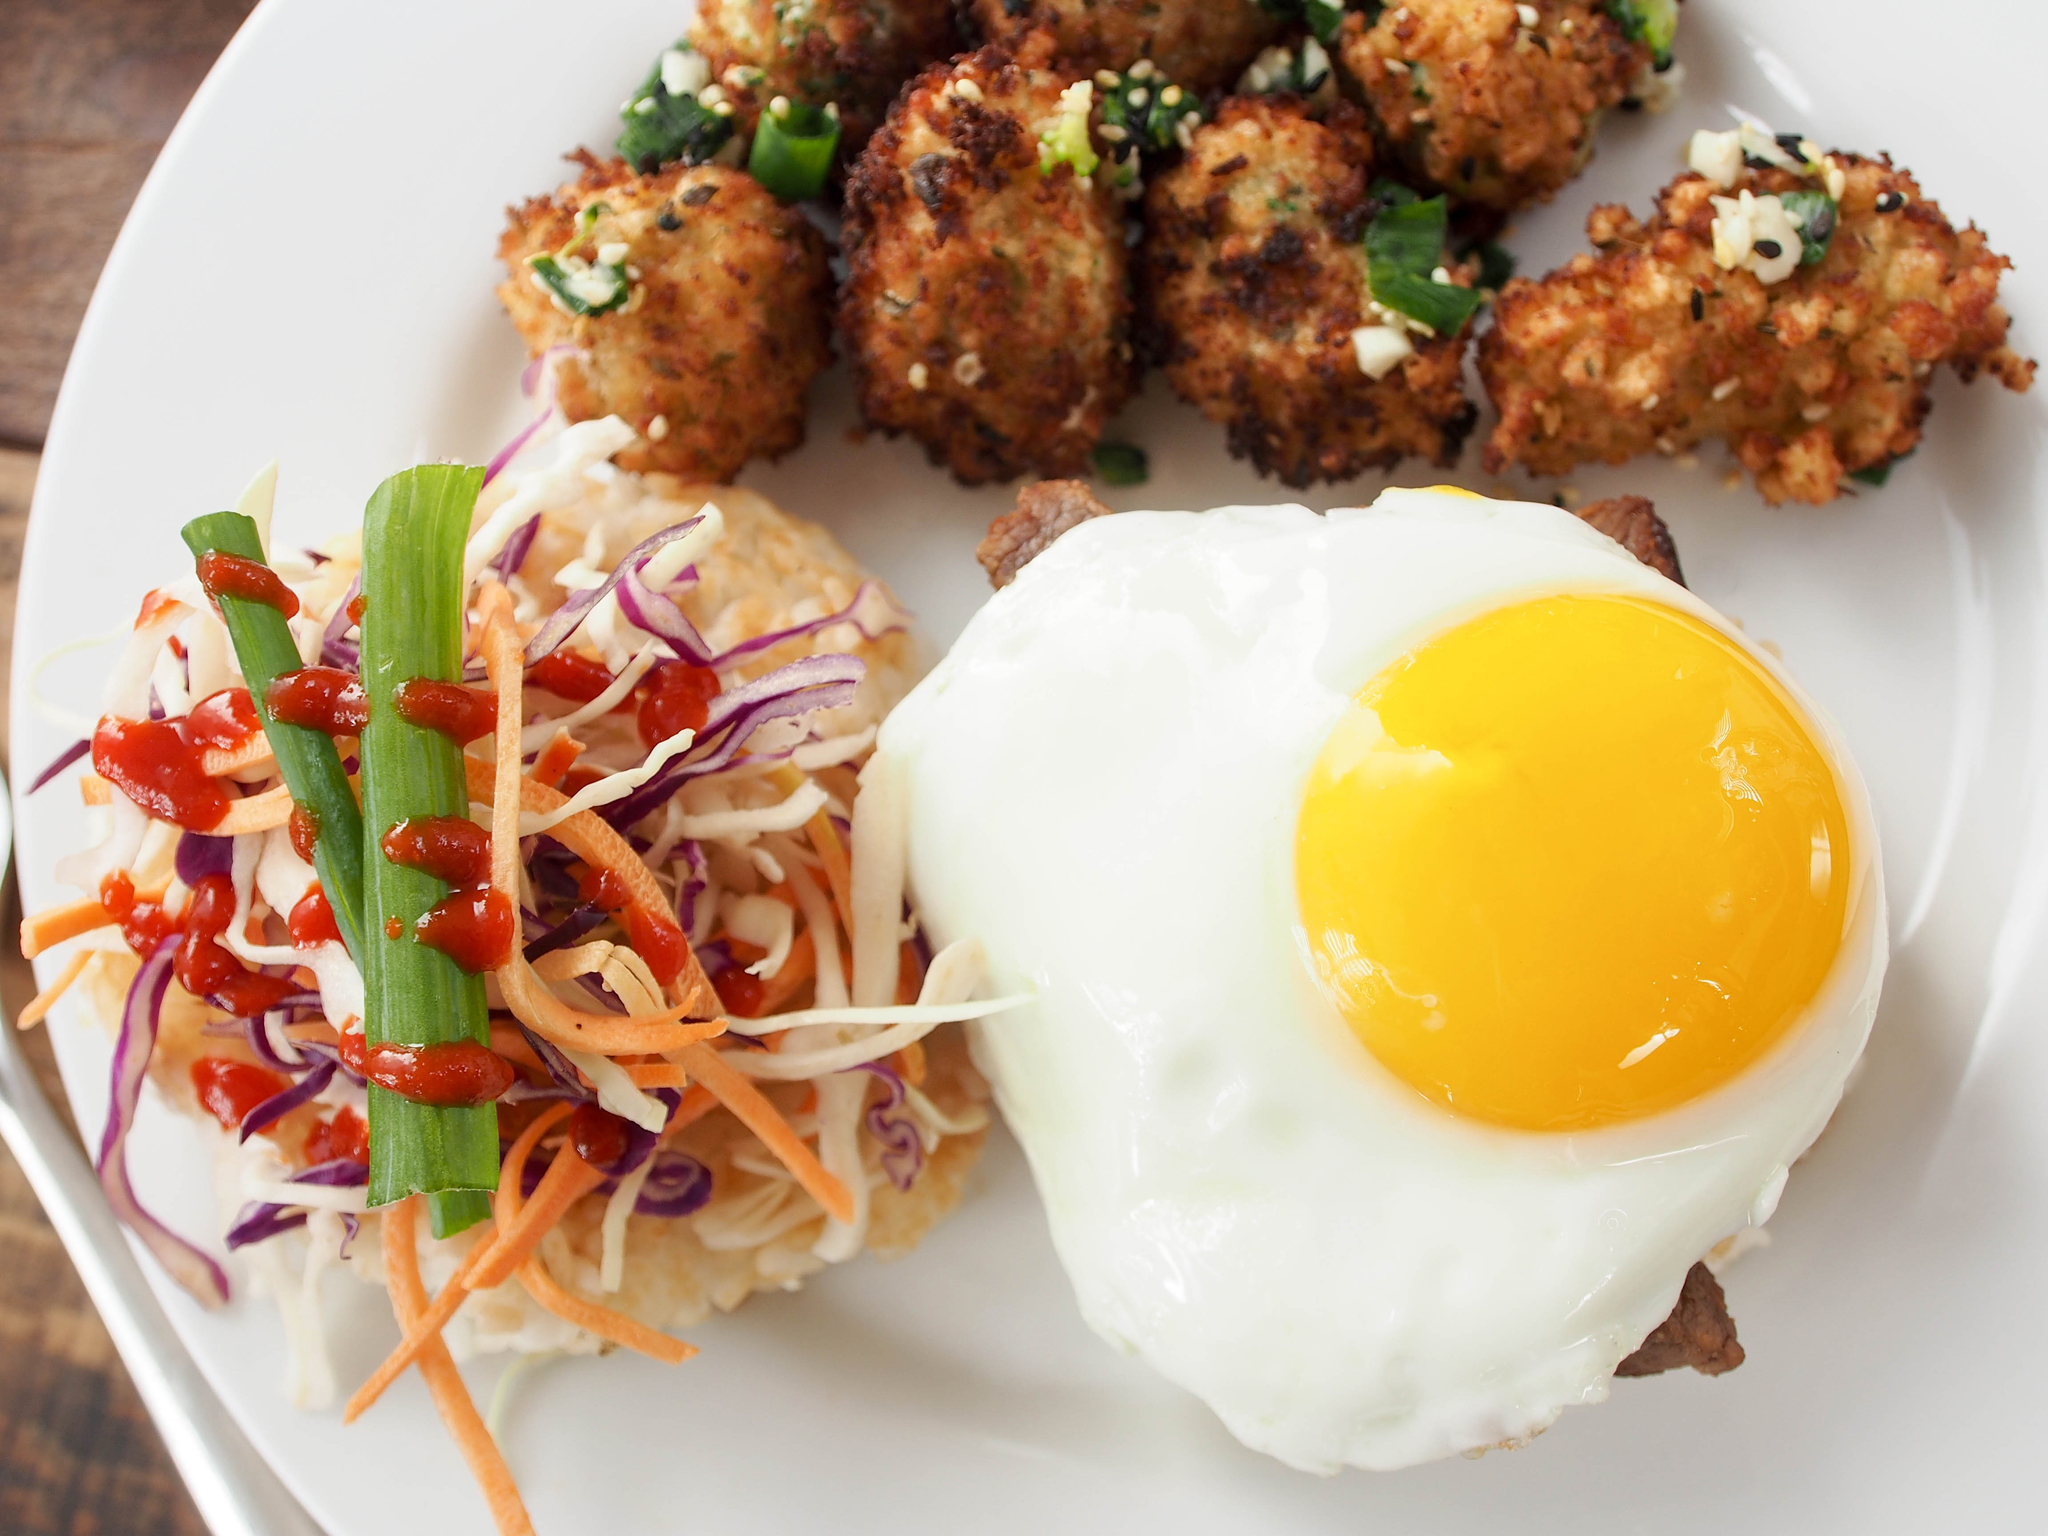 Close-up of the fried sesame broccoli and a top view of the burger. Look at that perfect sunny side up egg!